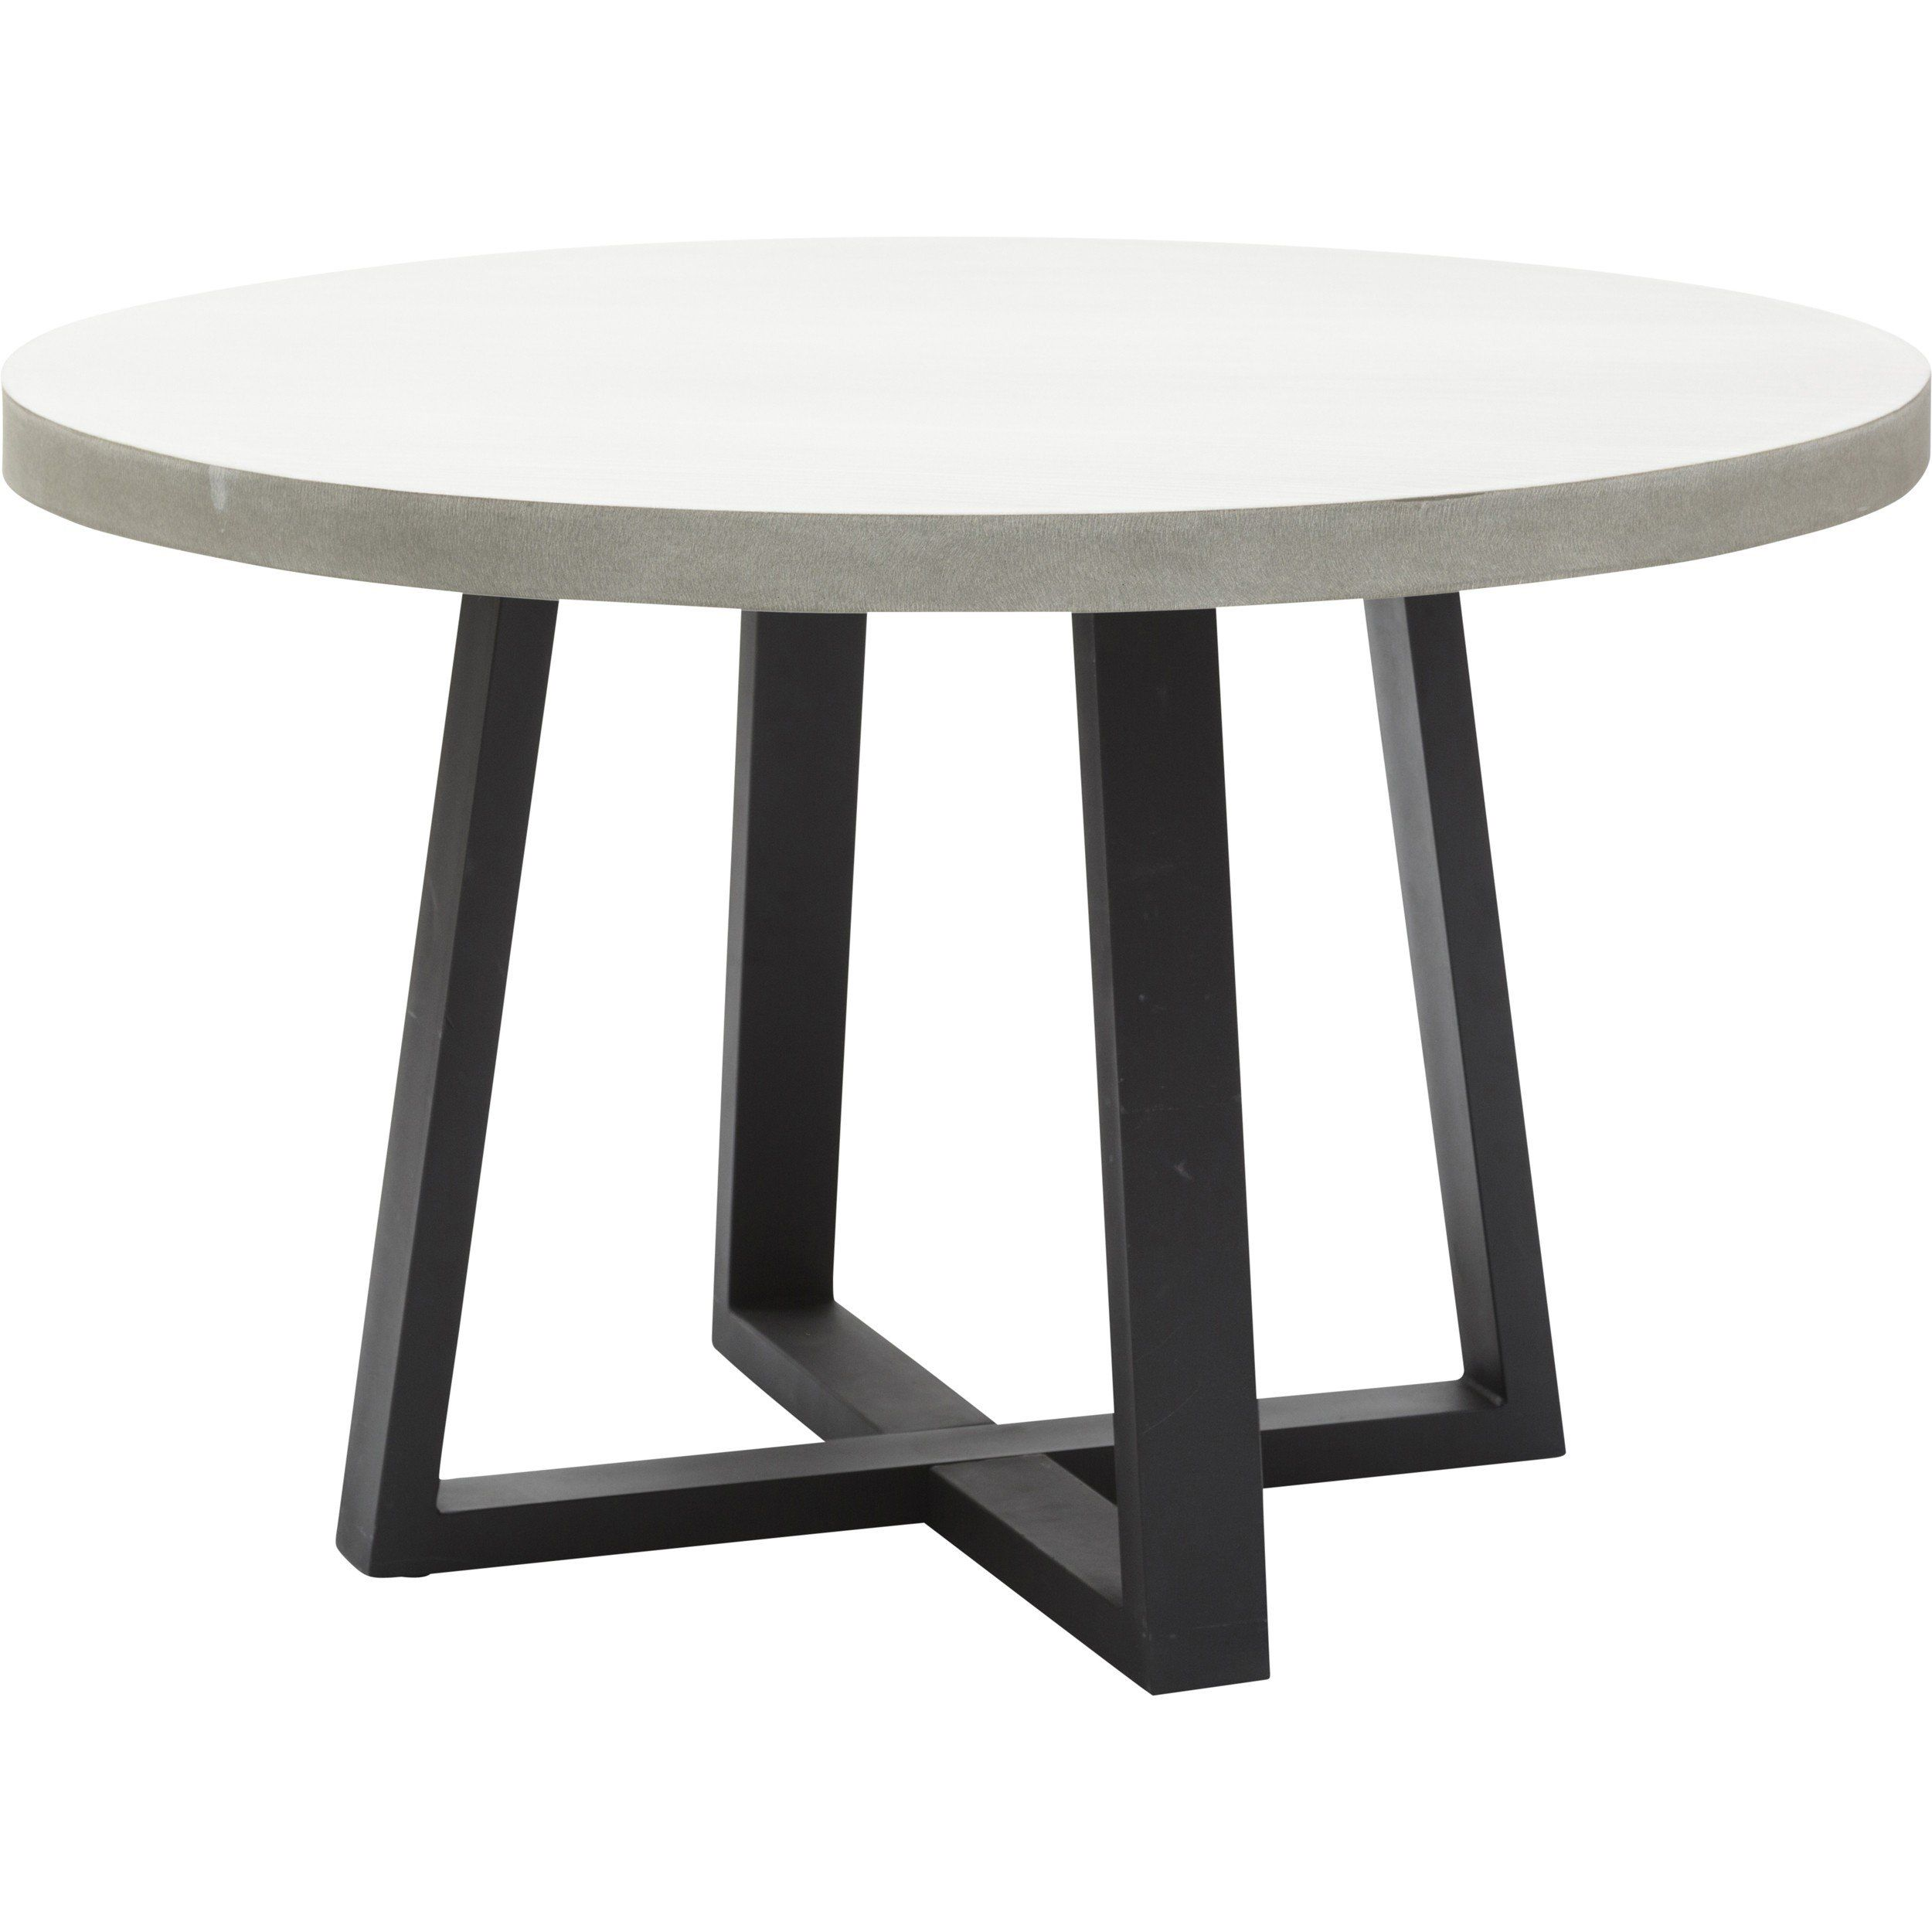 Cyrus 48 Dinner Tables Furniture Circle Dining Table Round